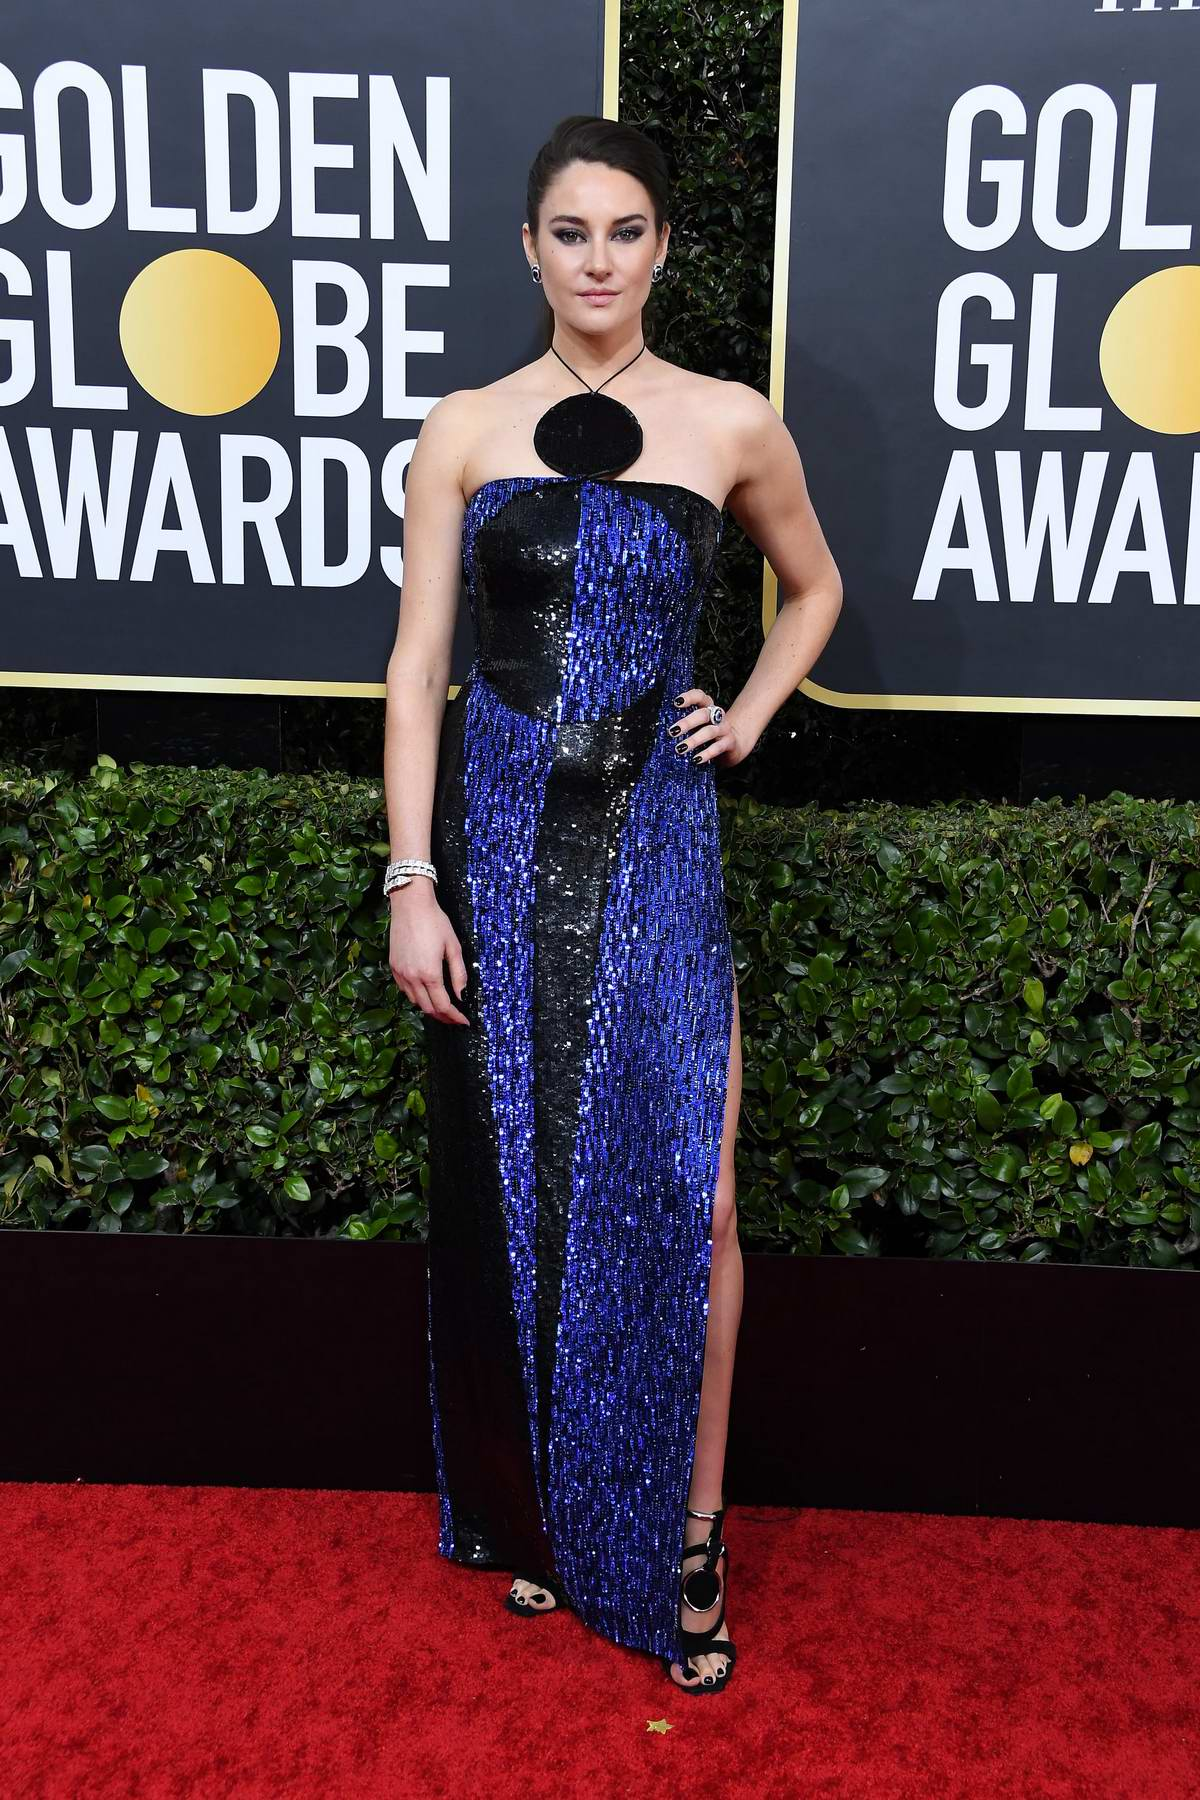 Shailene Woodley attends the 77th Annual Golden Globe Awards at The Beverly Hilton Hotel in Beverly Hills, California